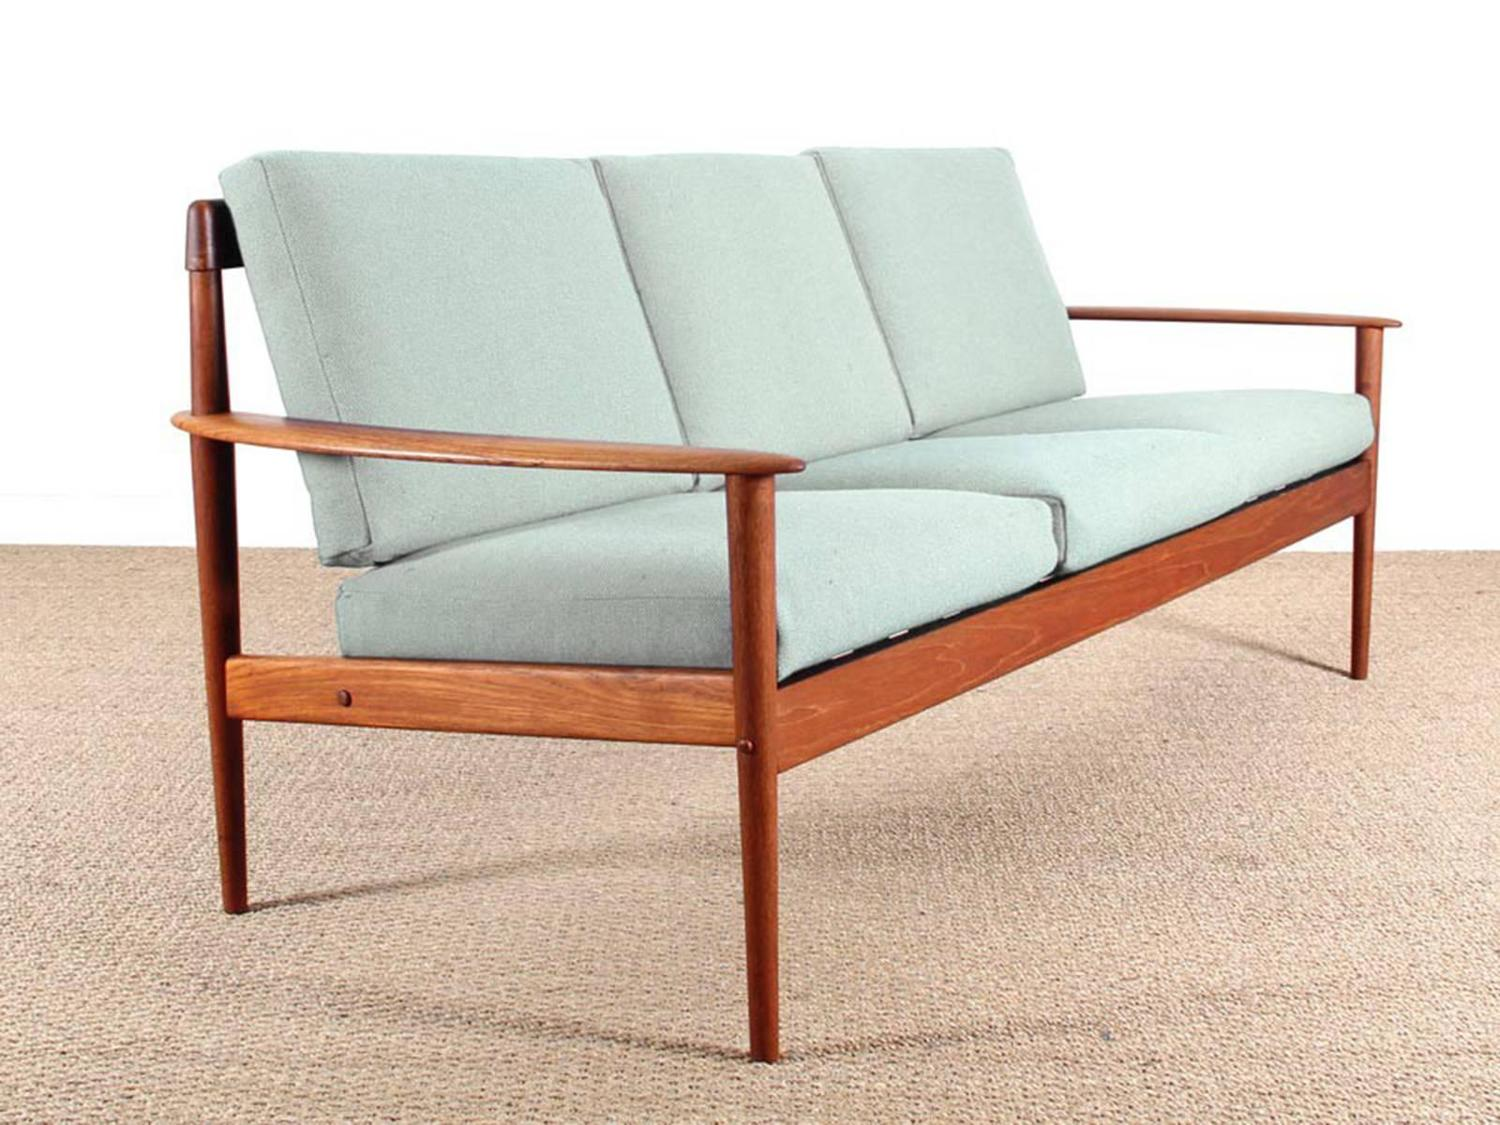 danish modern three seat sofa in teak model pj56 3 at 1stdibs. Black Bedroom Furniture Sets. Home Design Ideas